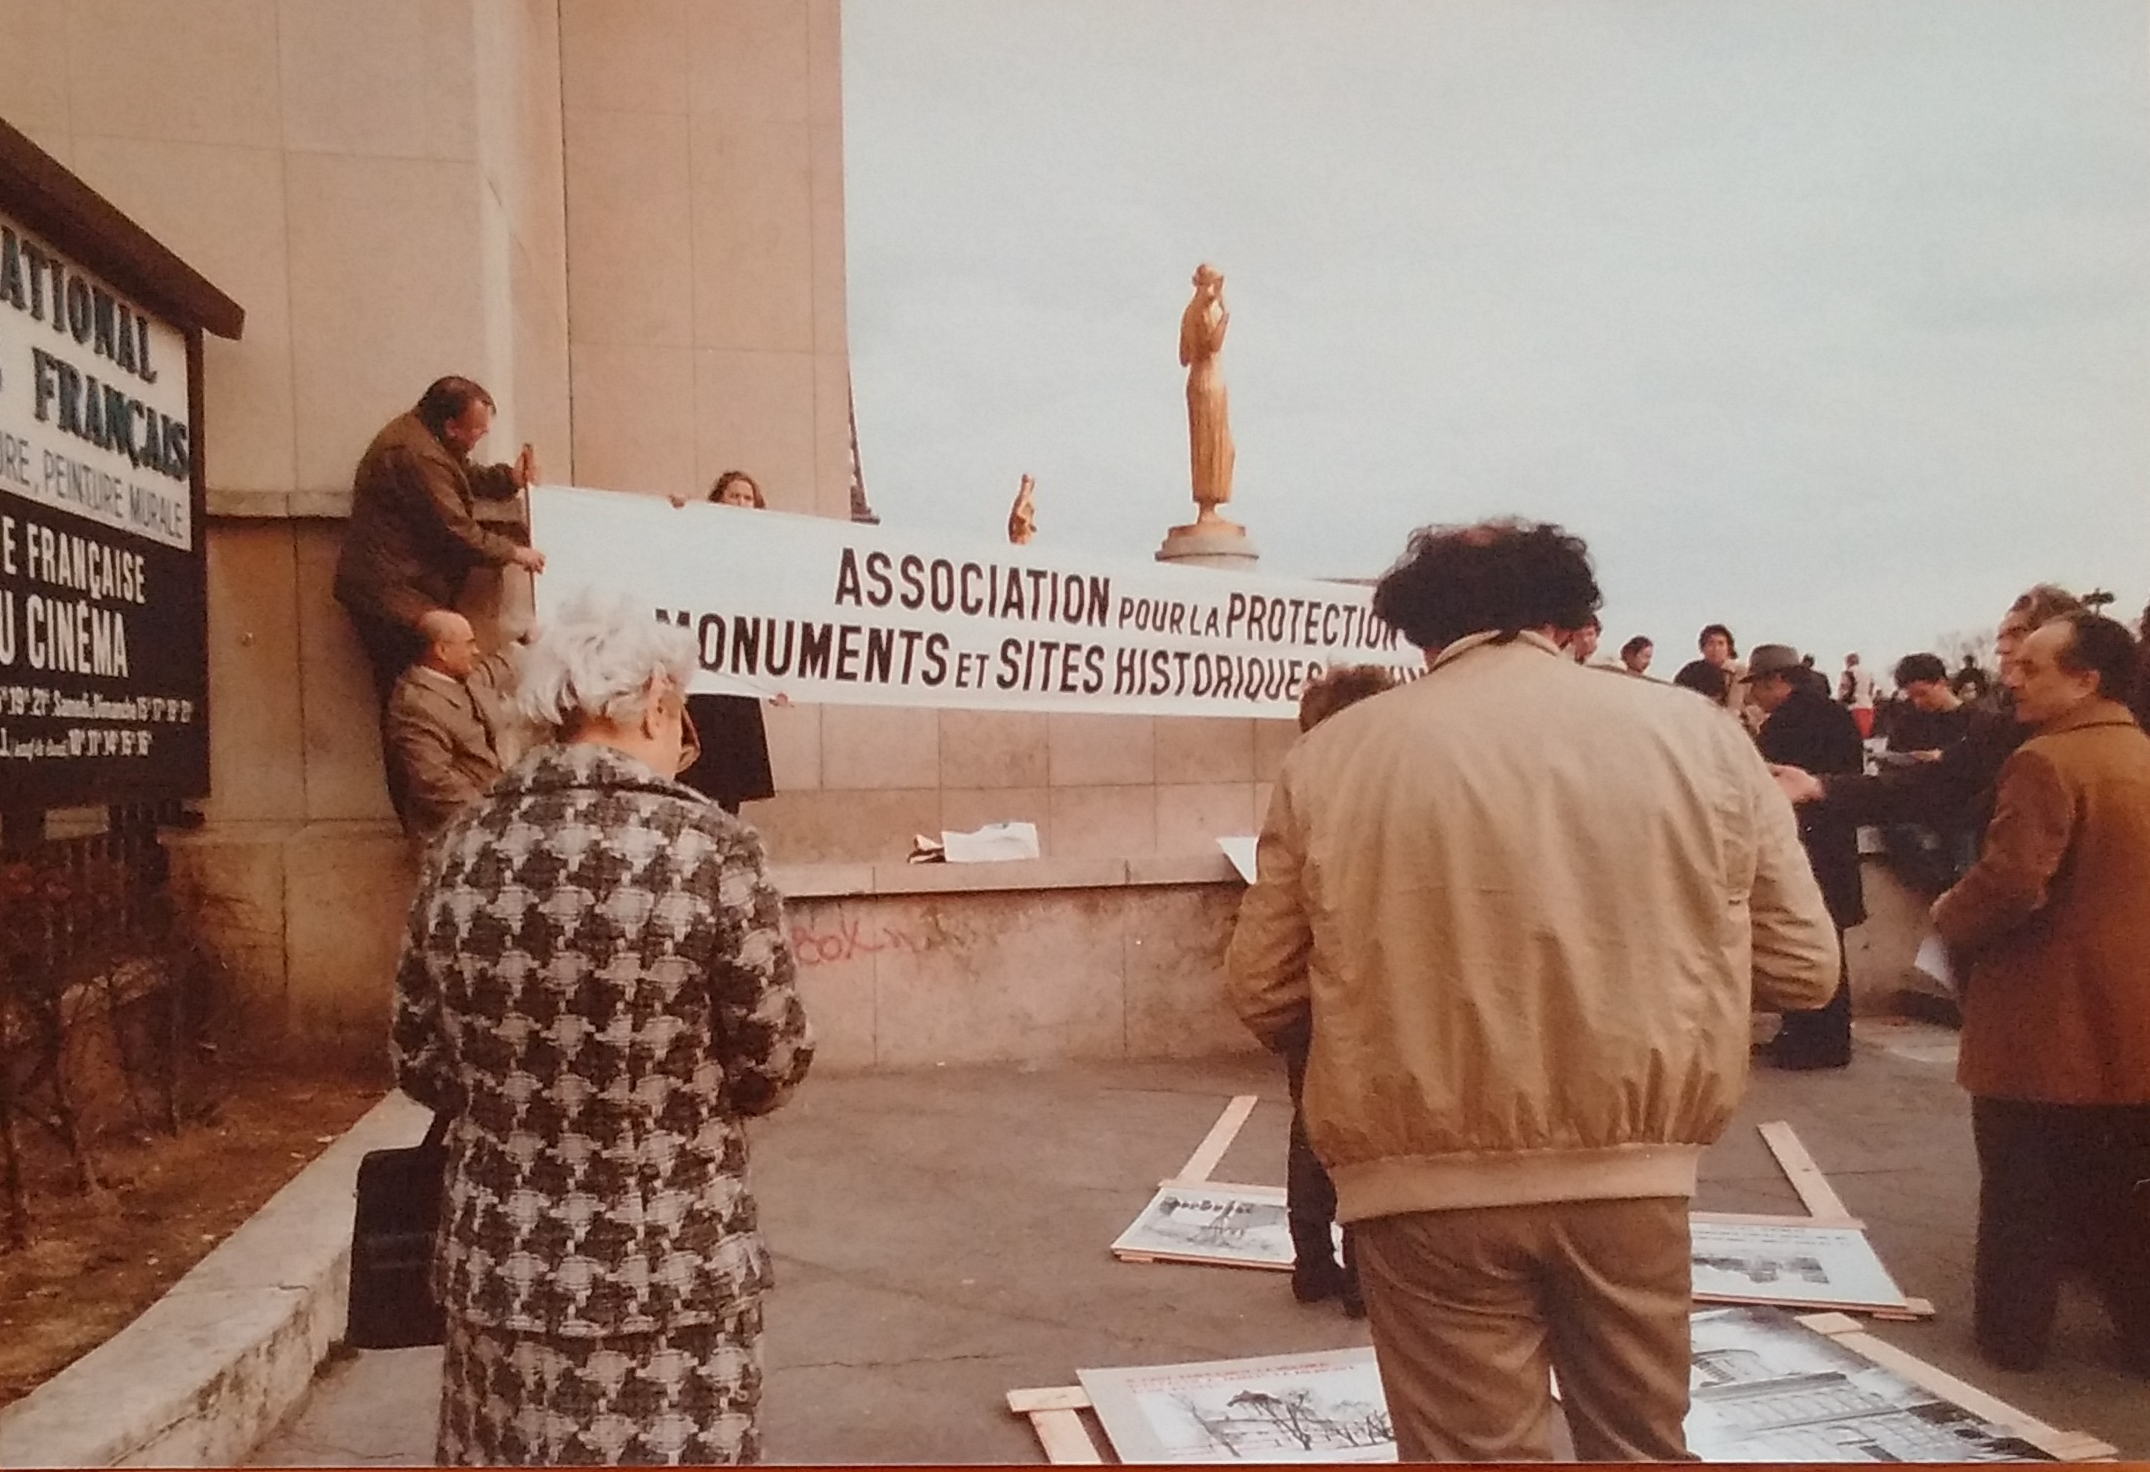 Protest of The International Association for the Protection of Monuments and Historical Sites in Romania, Paris, 1985.